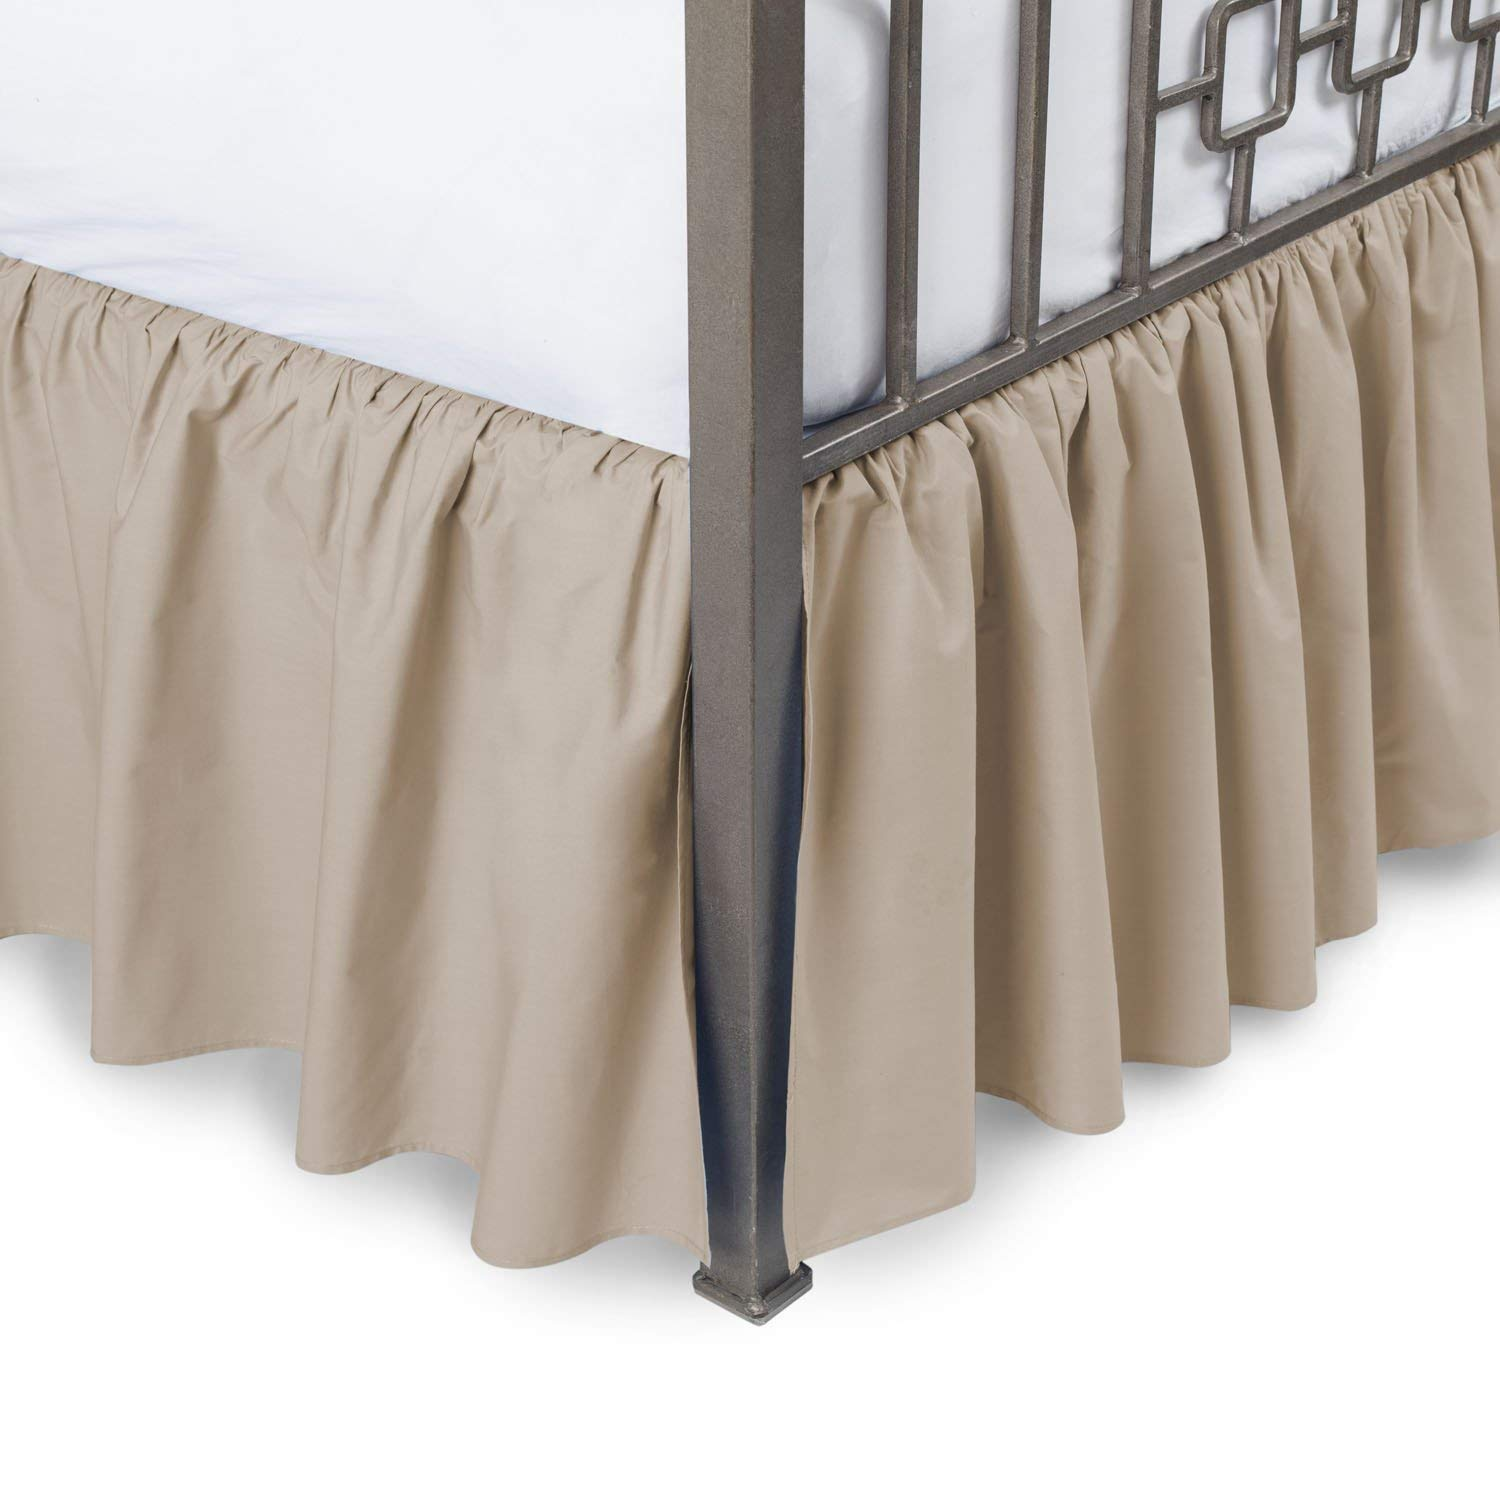 Available in all size Taupe Ruffled Bed Skirt with Split Corner